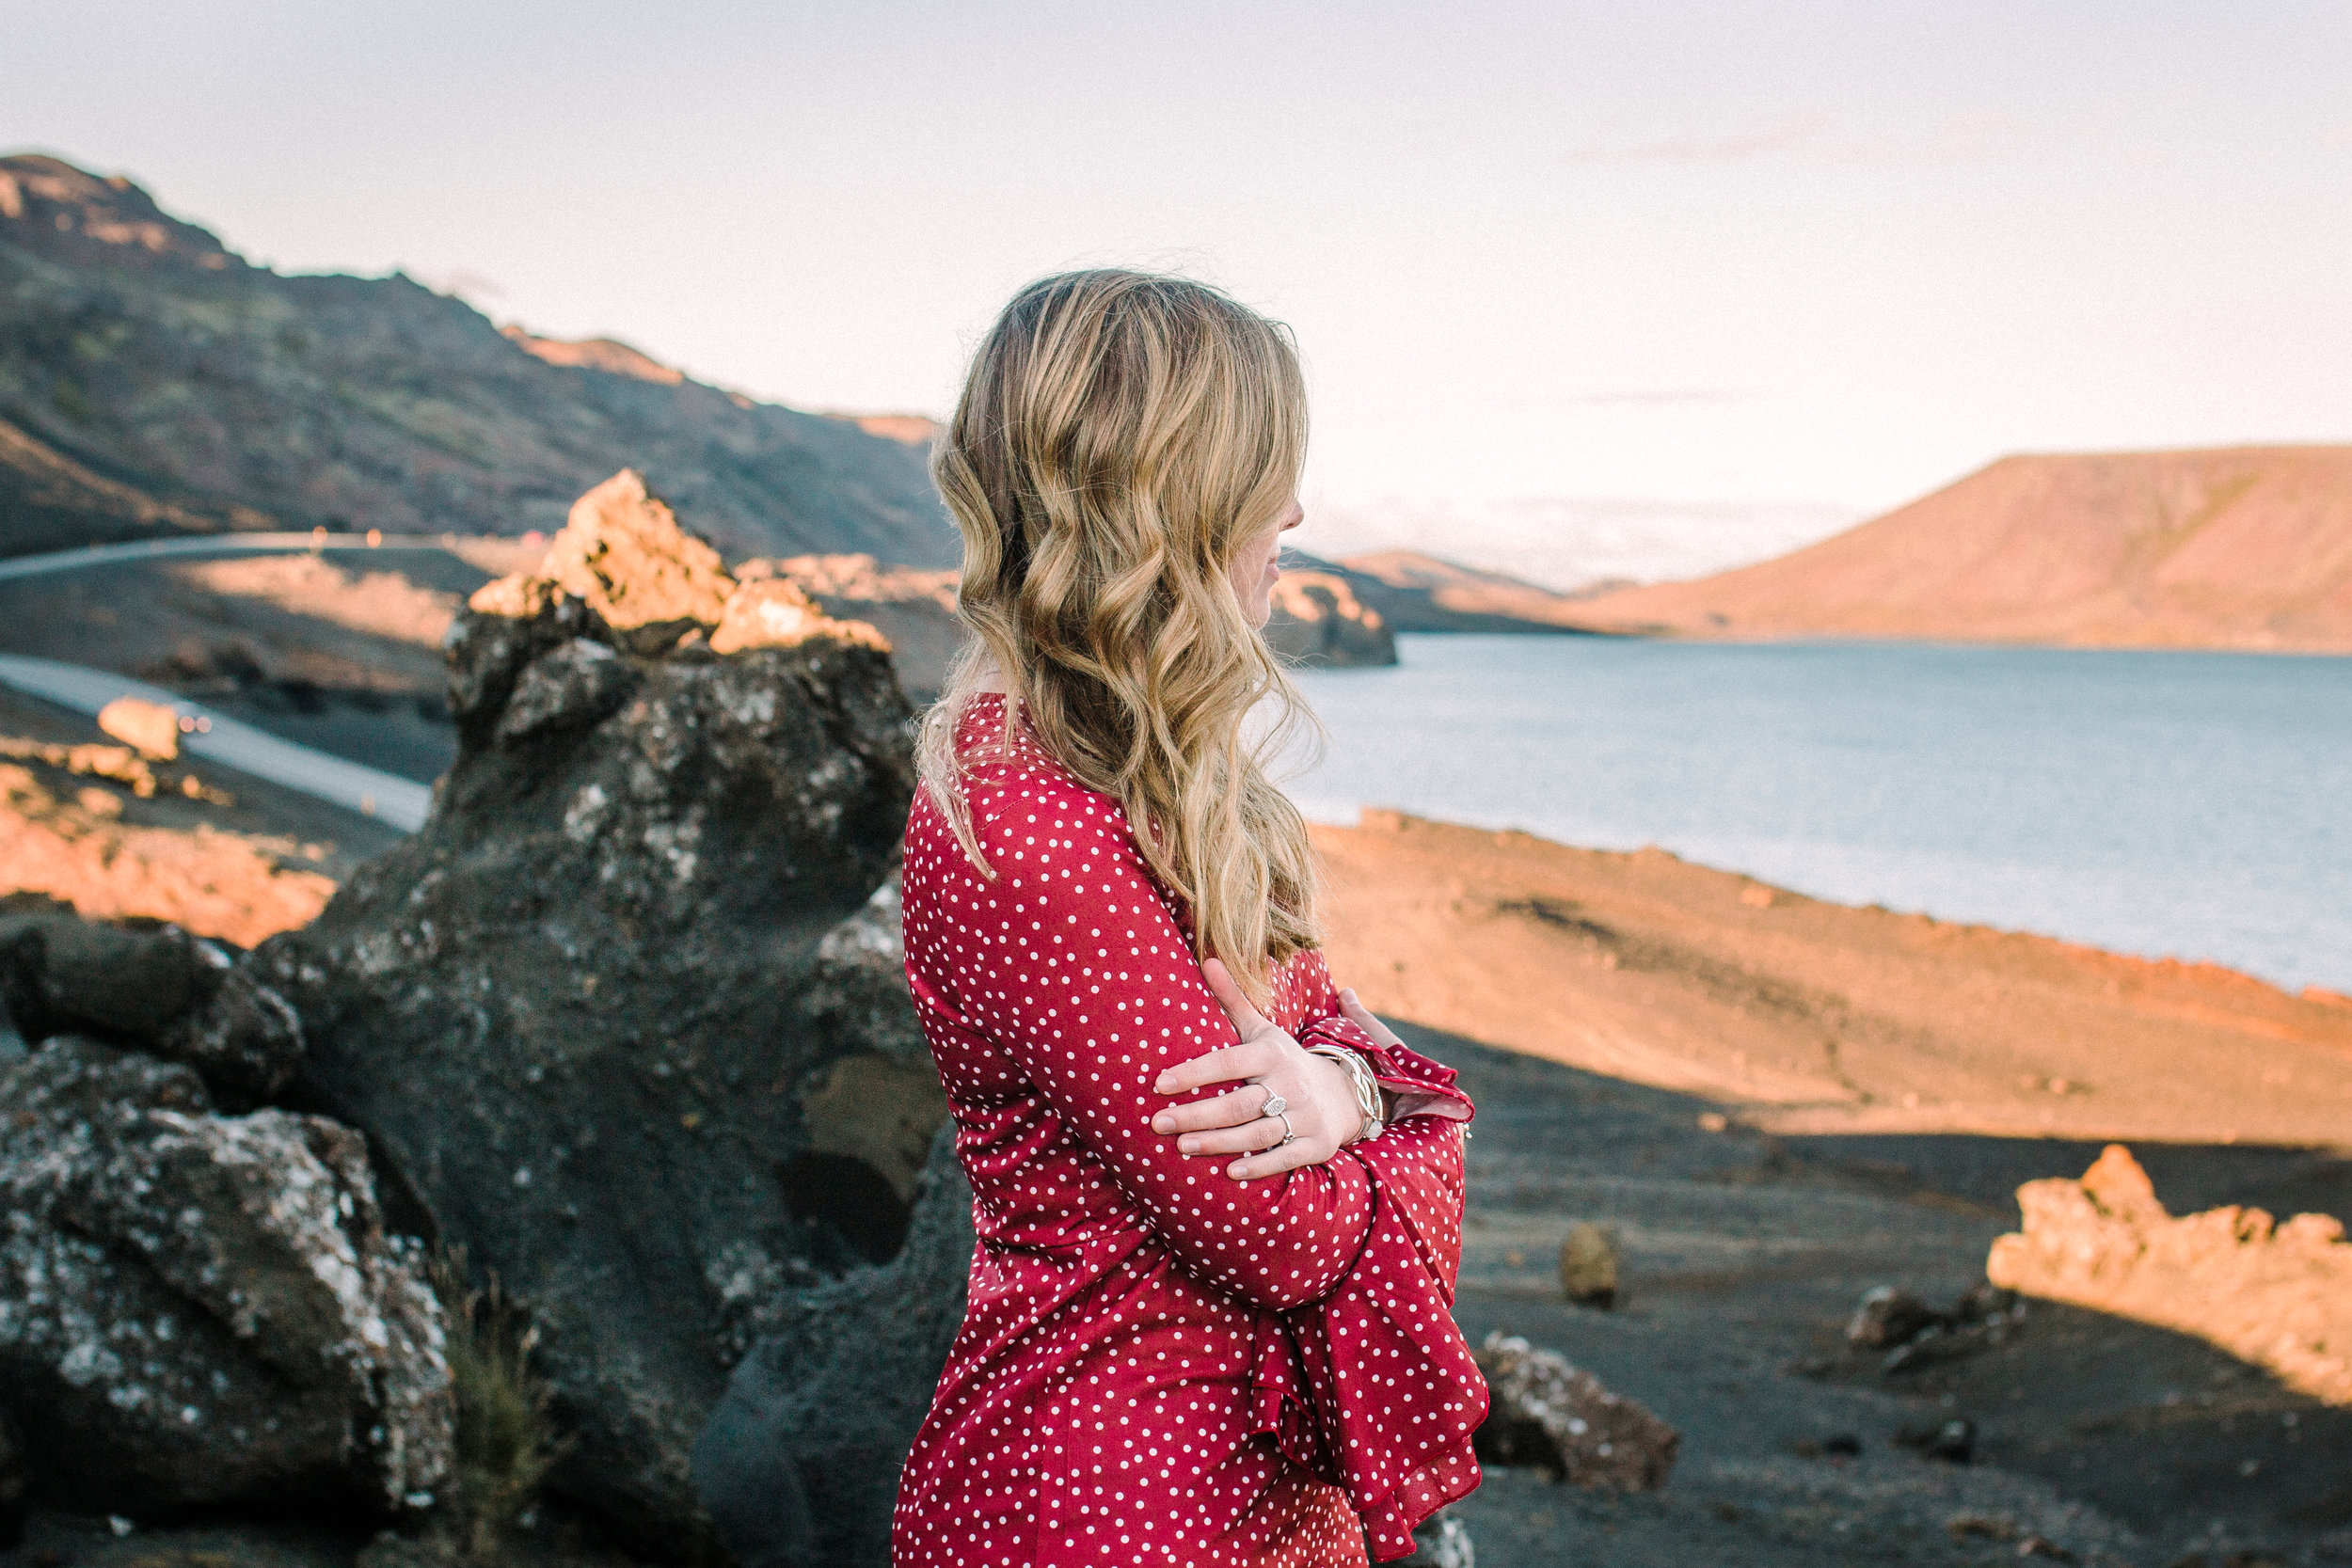 Icelandic Wedding Photographer Bettina Vass